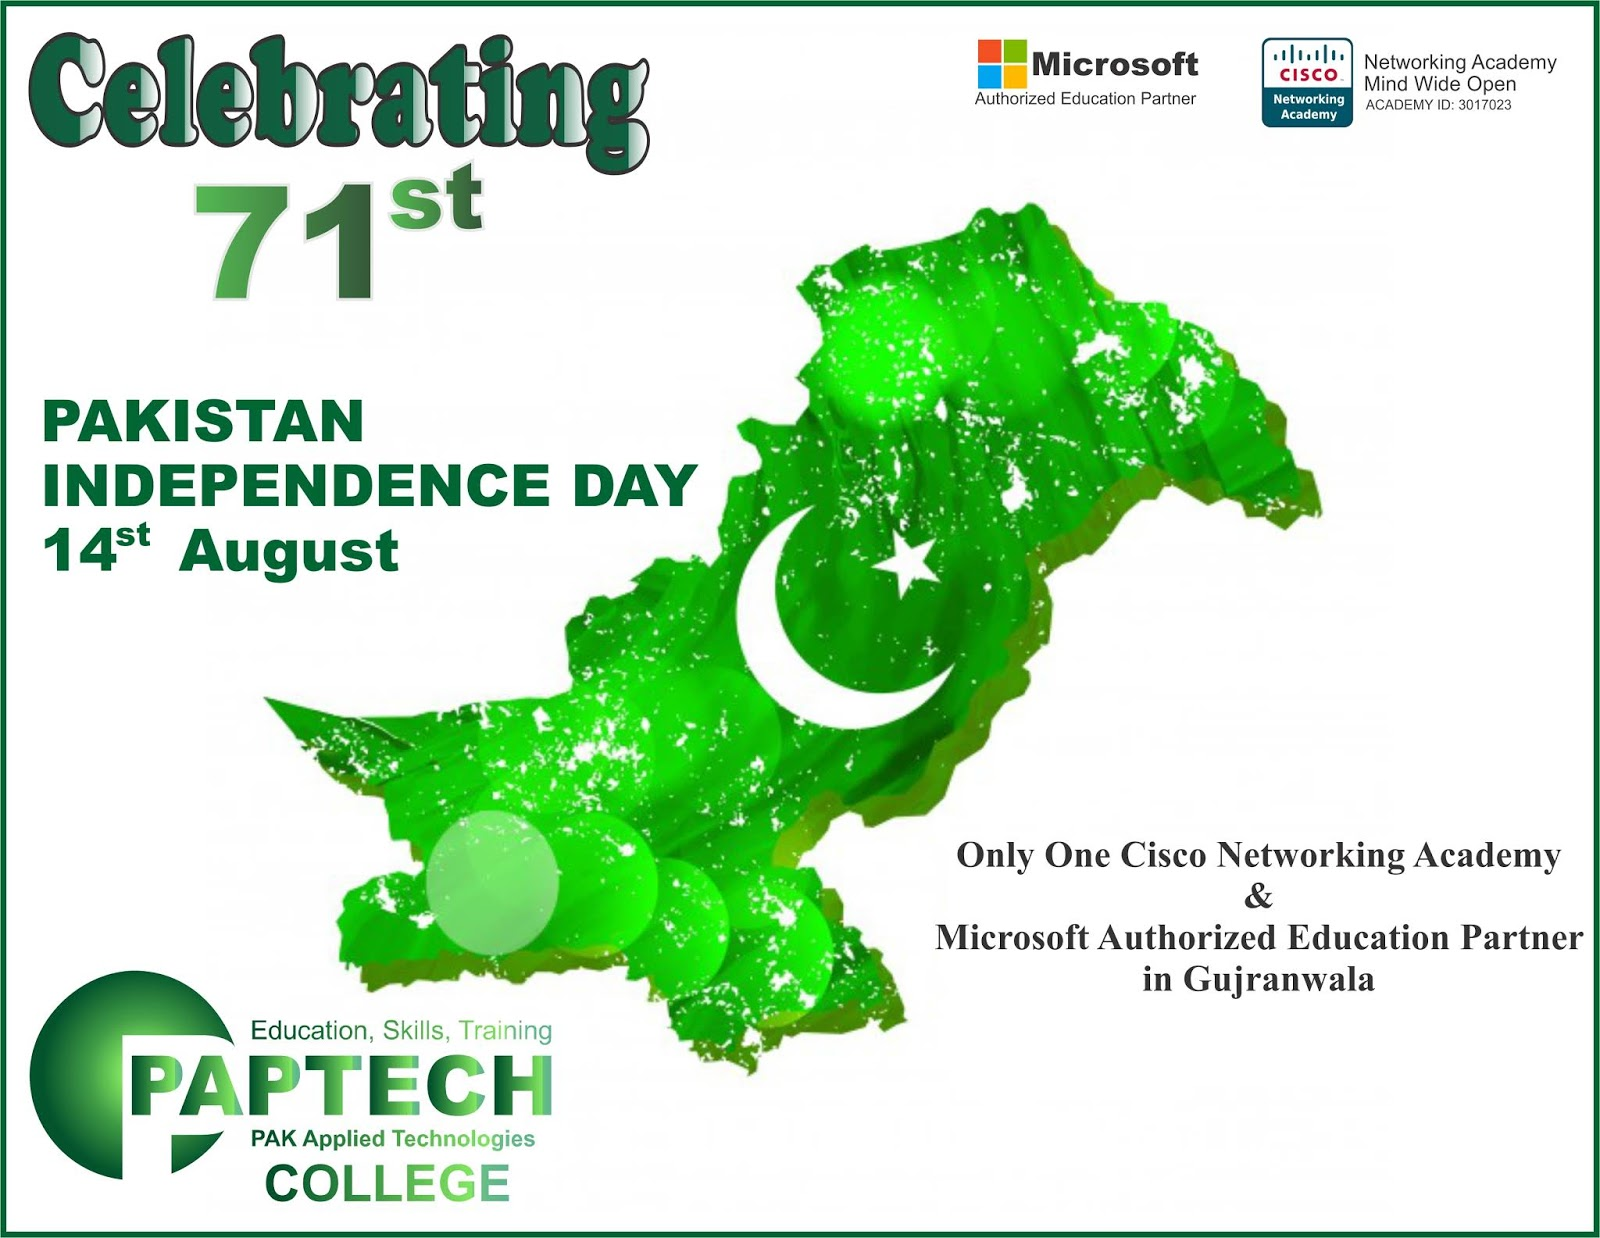 14 August 2018 Celebrating 71st Pakistan Independence Day